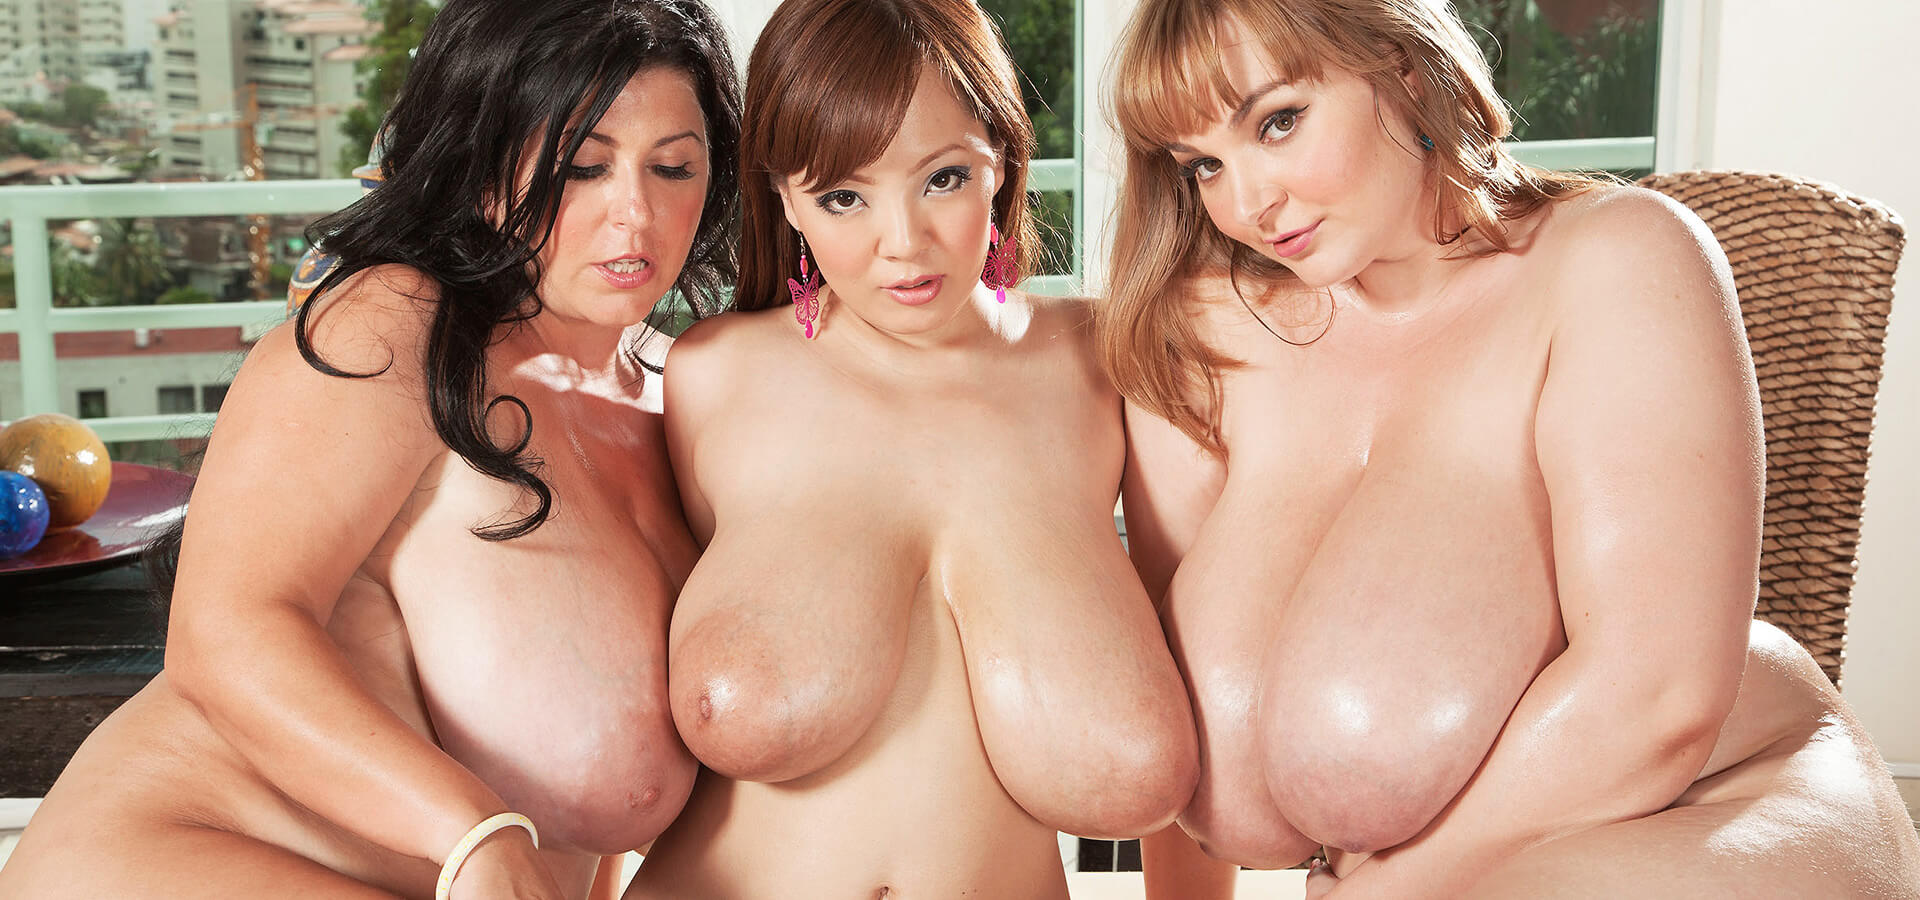 Micky Bells babes - Join Now!